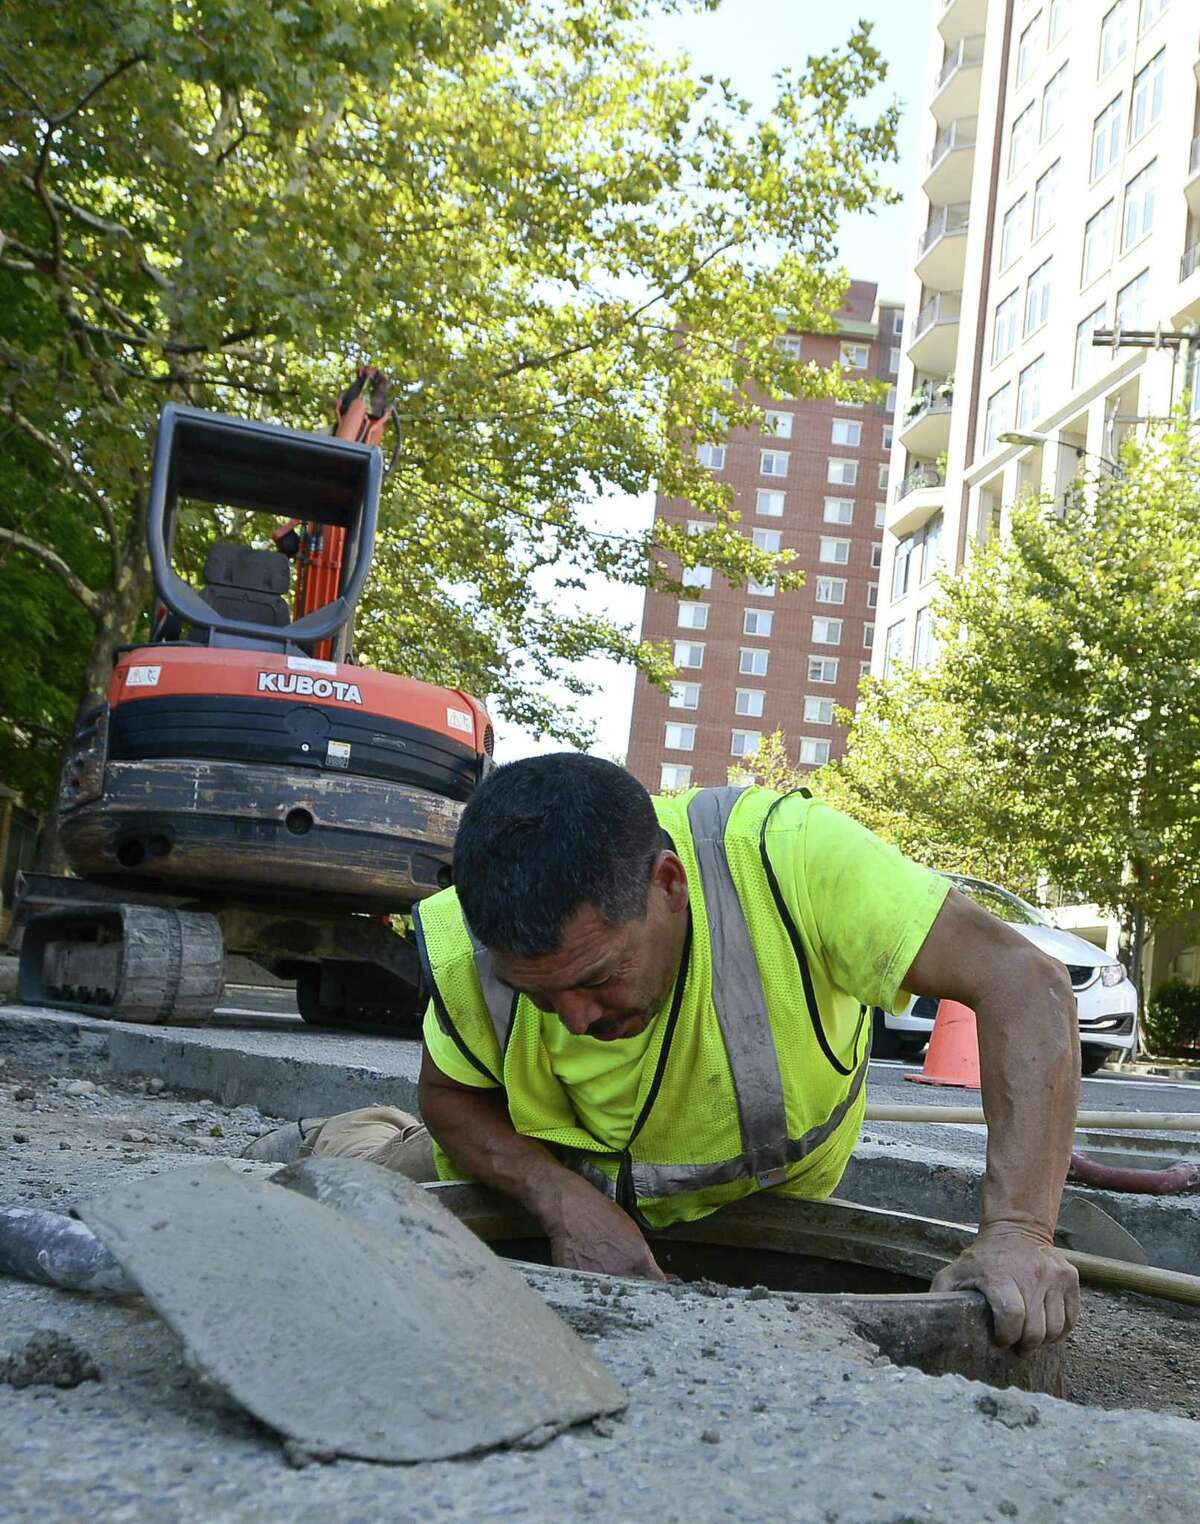 """Martin Farias of Grasso Companies, Norwalk, CT, finishes repairs to a 12"""" storm drain at the corner of Forest and Grove Street in Stamford, Connecticut on Friday, Sept. 22, 2017. The work was being done in preparation for paving of Forest Street next week."""